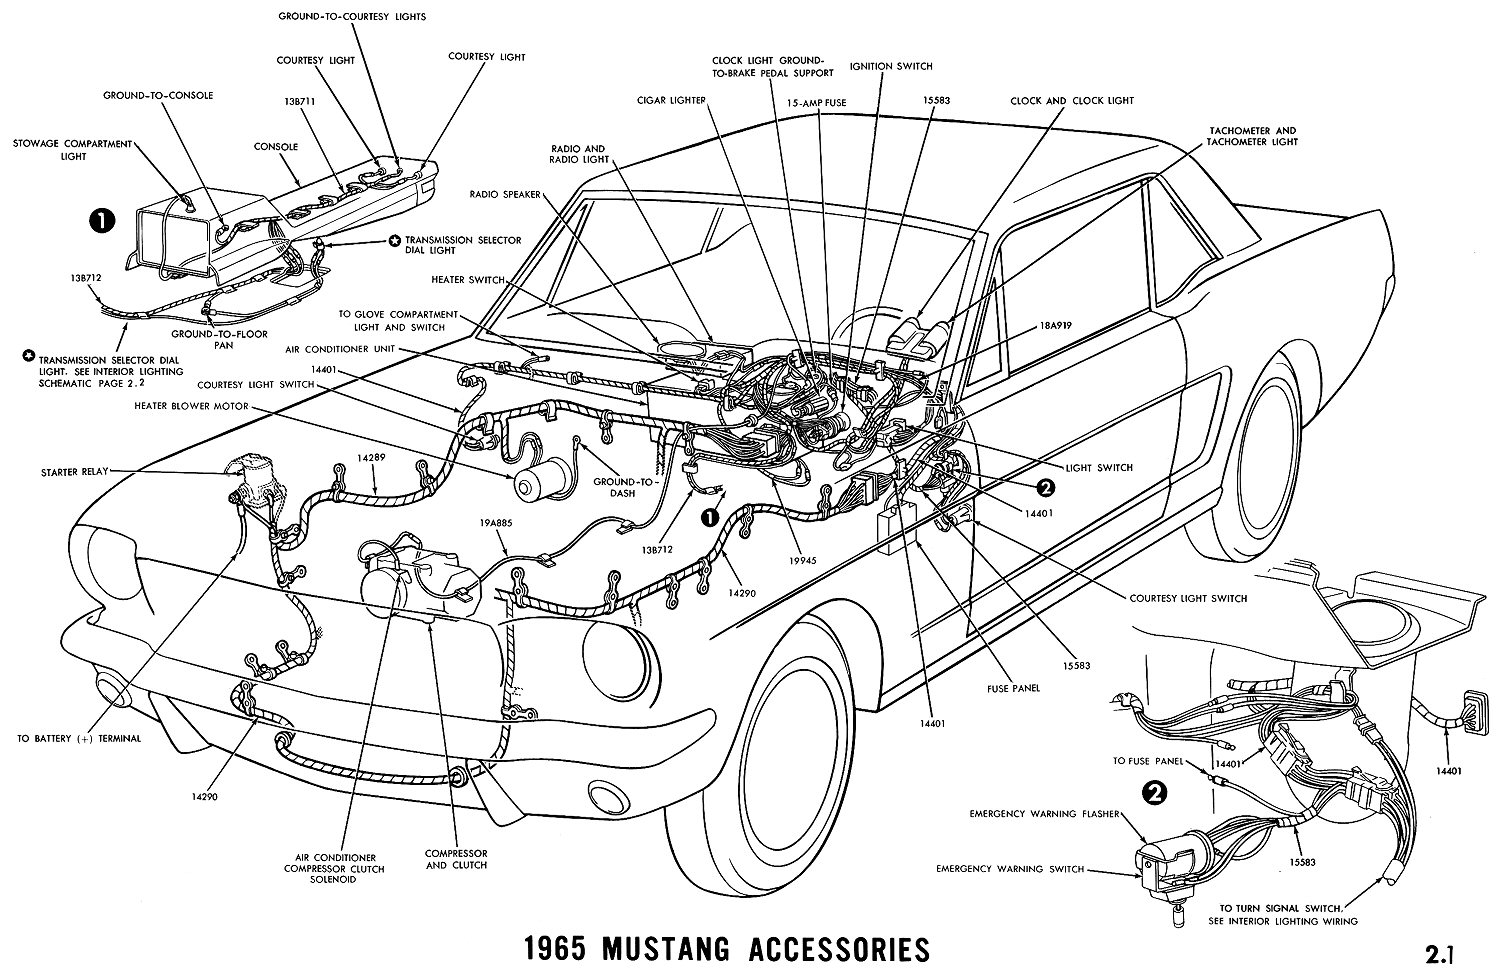 65 mustang accesories 1965 mustang accesories diagram 1965 mustang instrument cluster wiring diagram at n-0.co